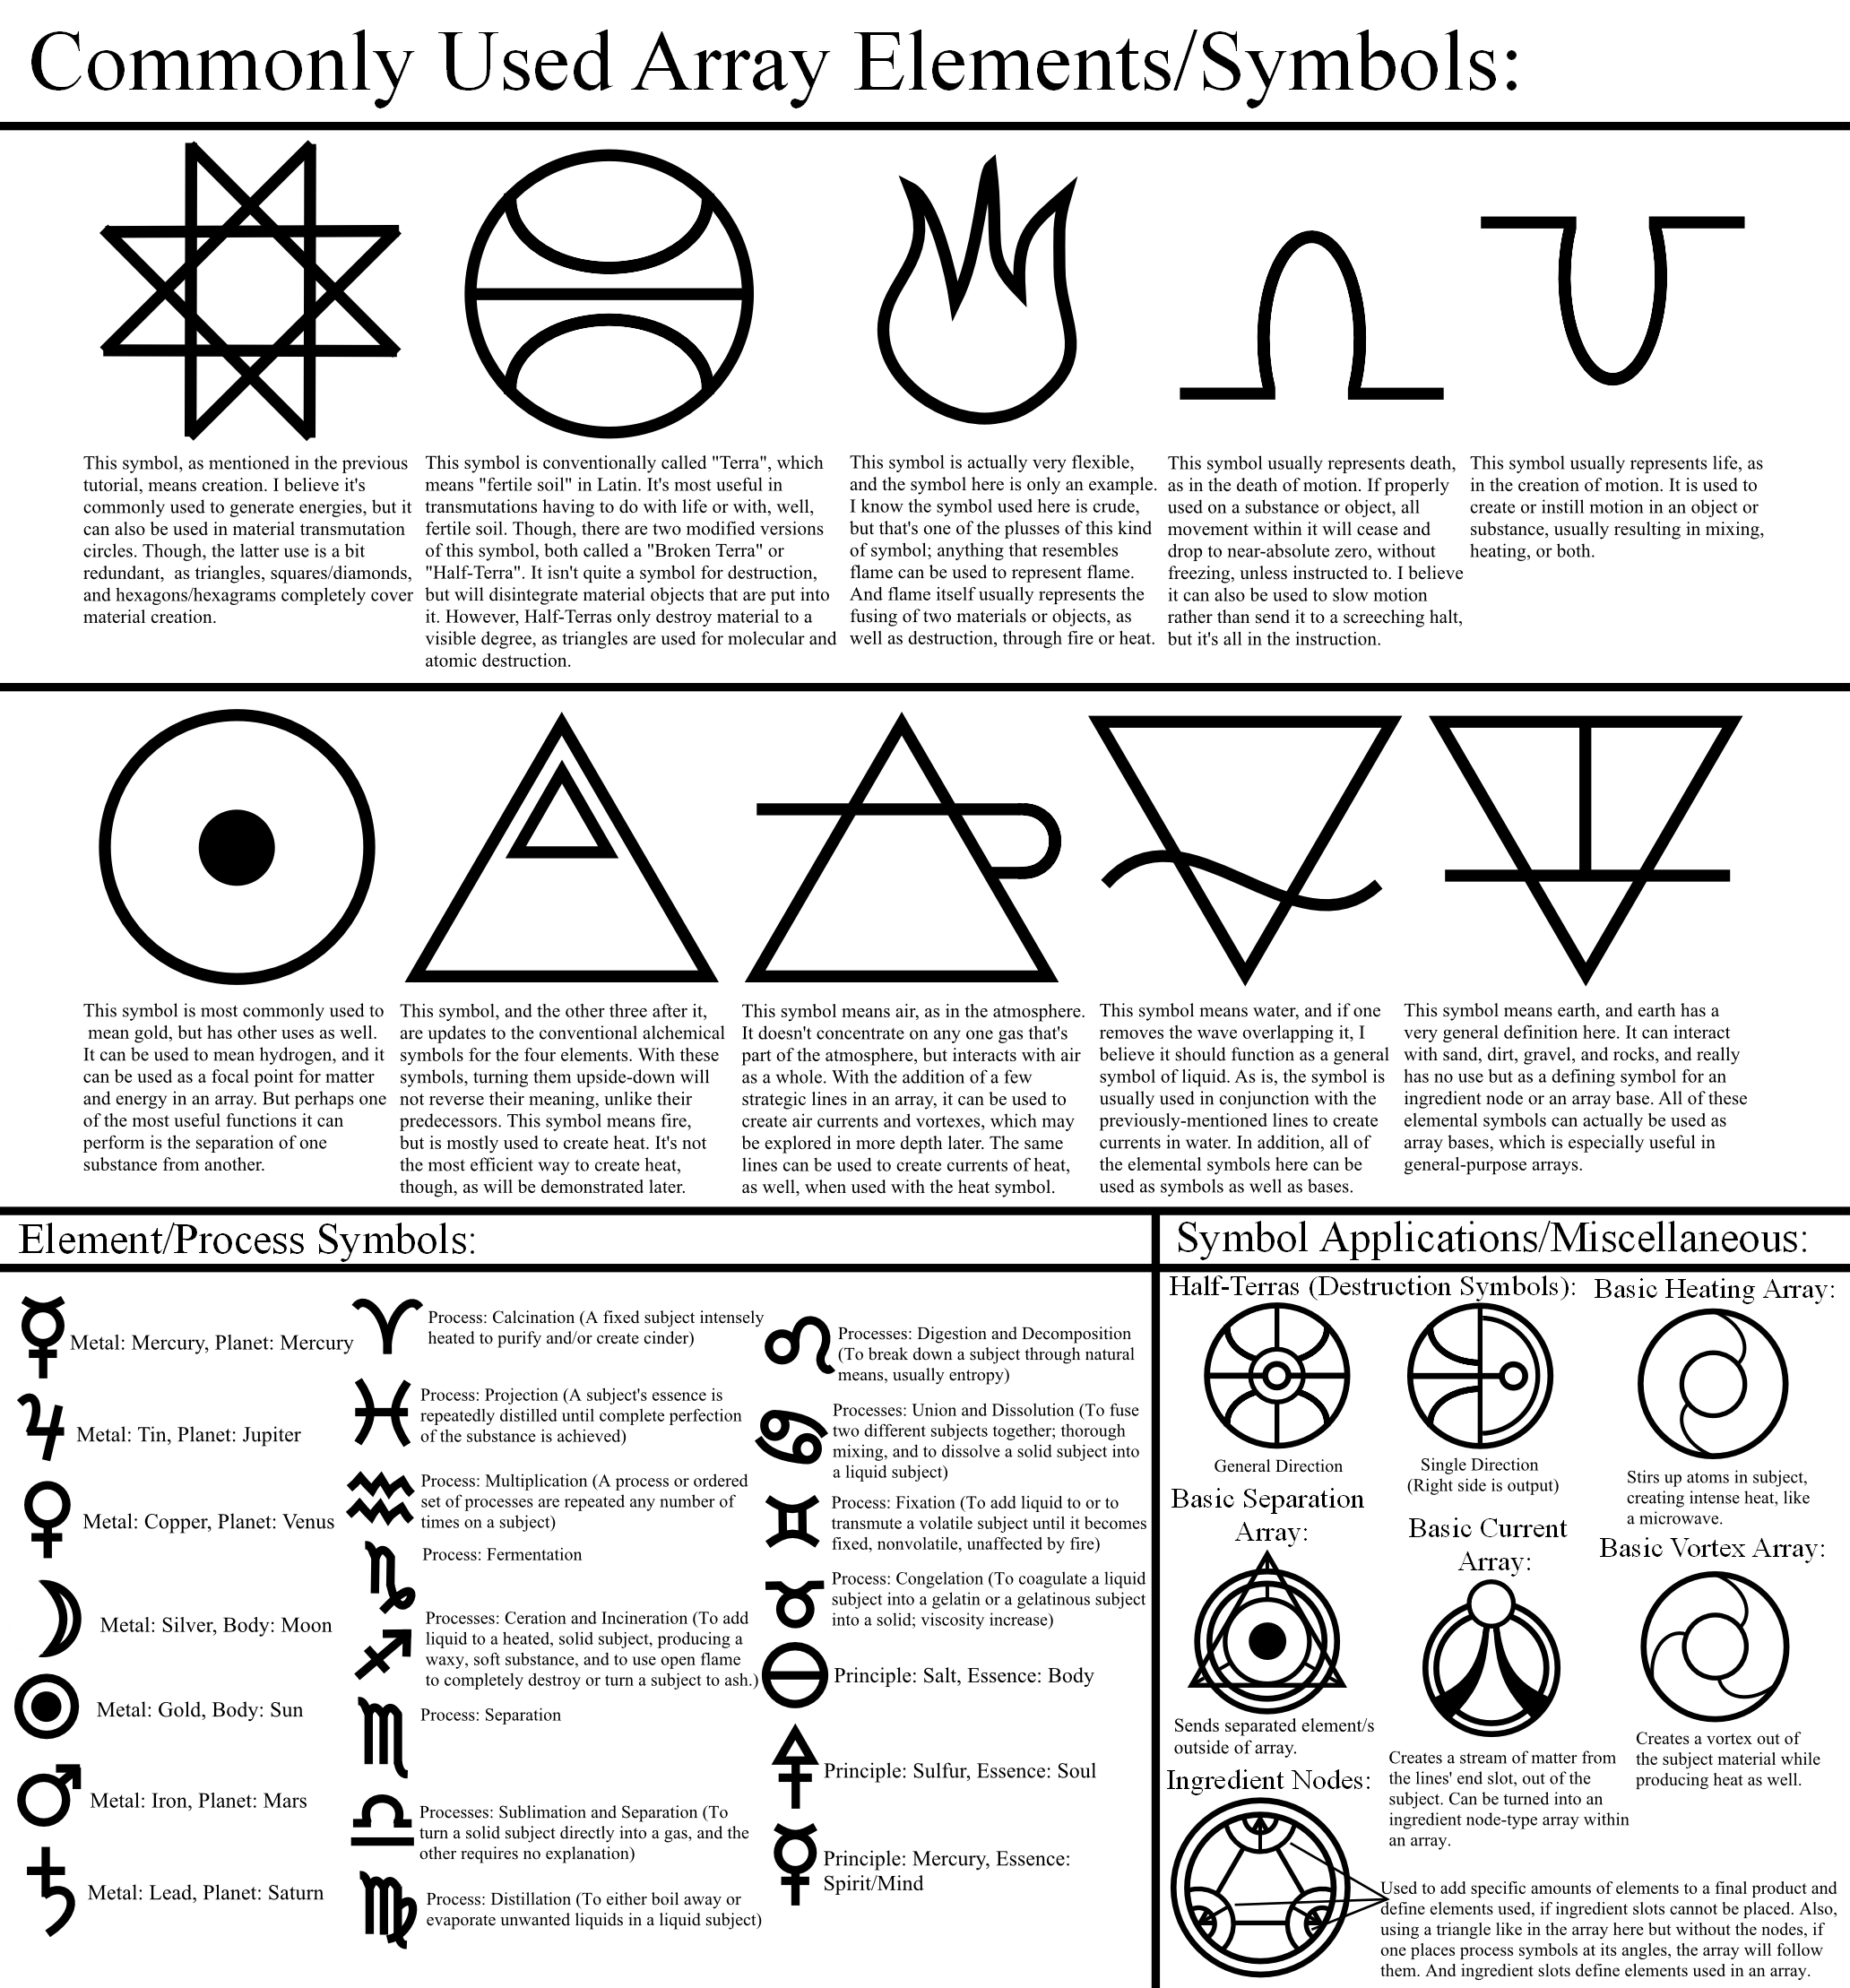 Alchemical emblems occult diagrams and memory arts alchemy alchemical emblems occult diagrams and memory arts alchemy symbols ink pinterest occult alchemy and diagram biocorpaavc Images